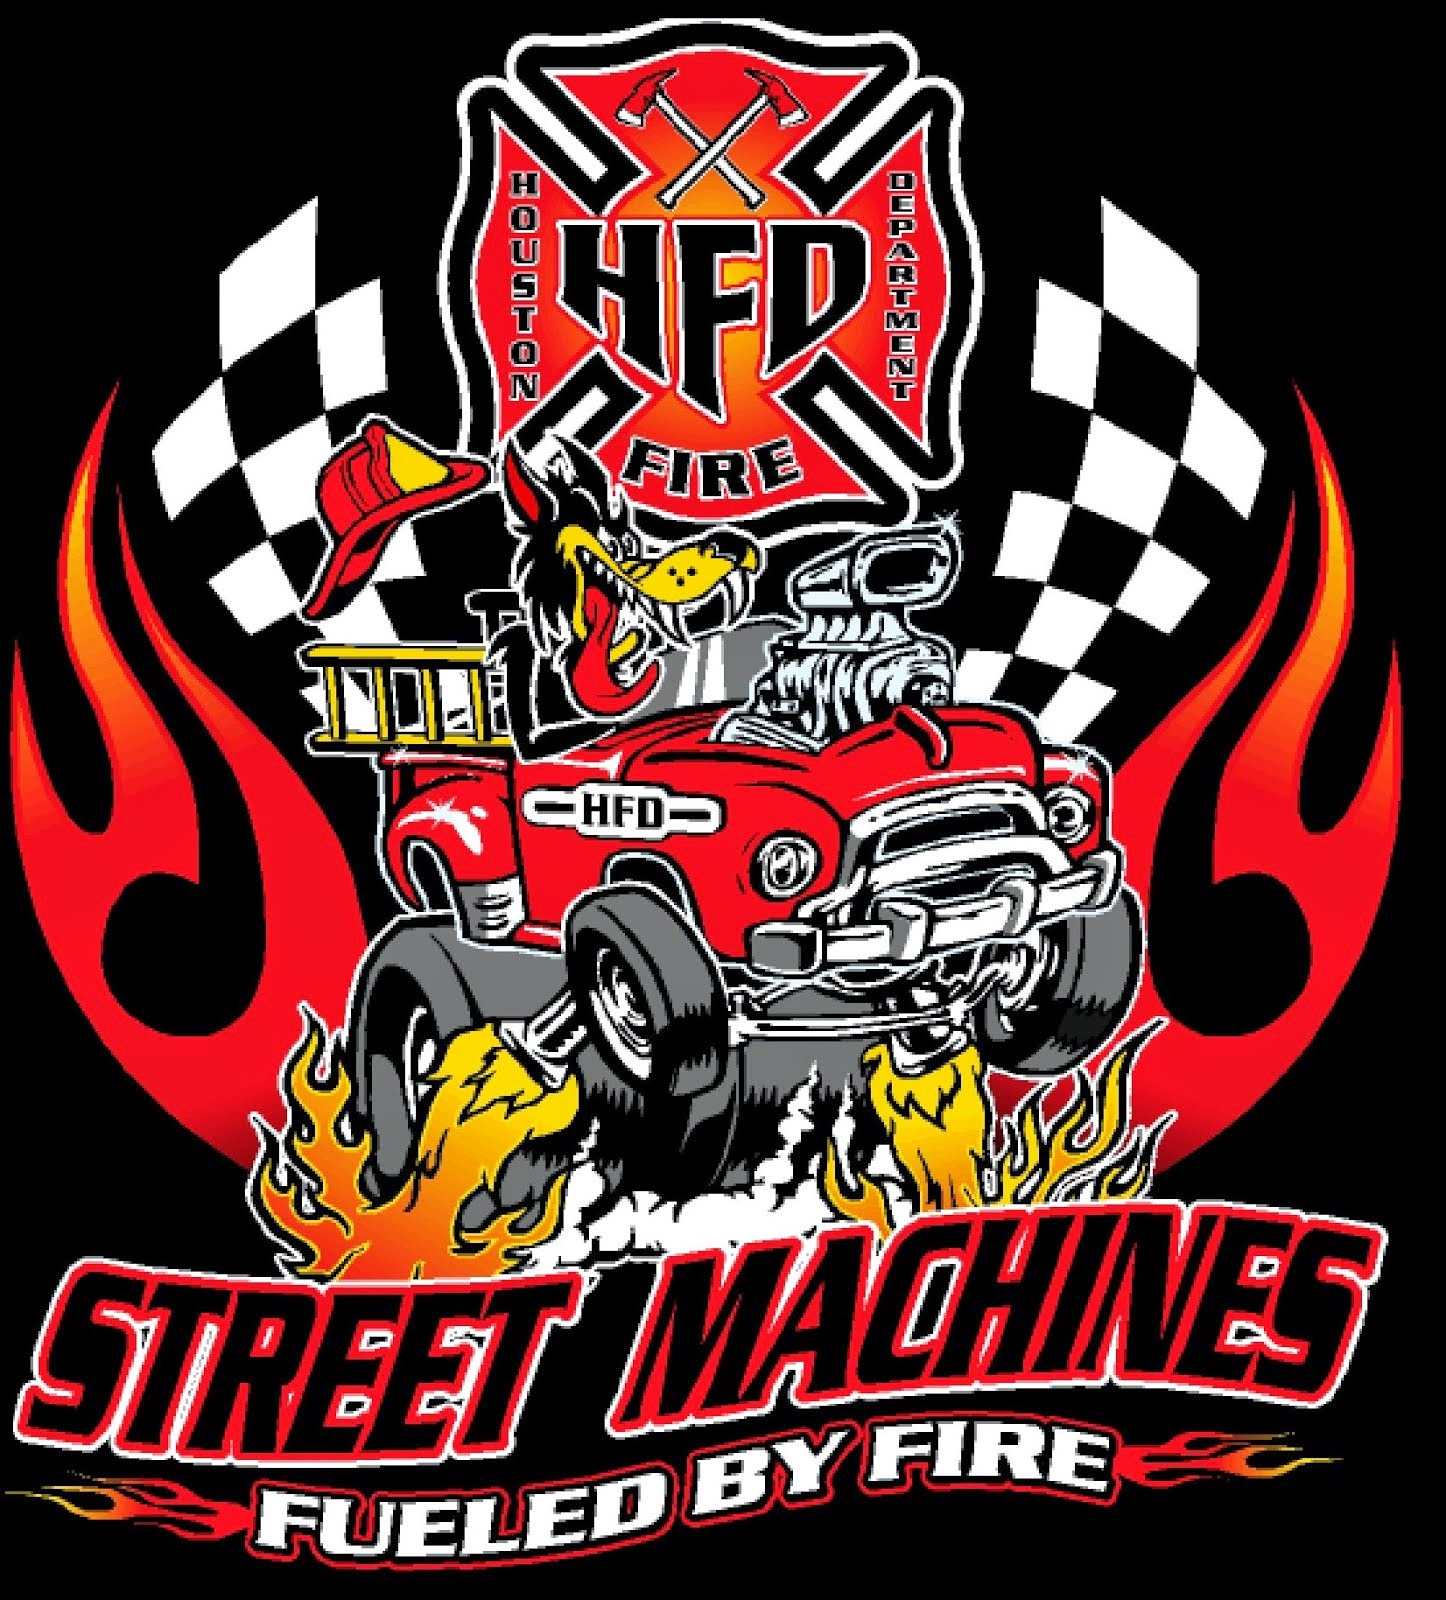 HFD STREET MACHINES